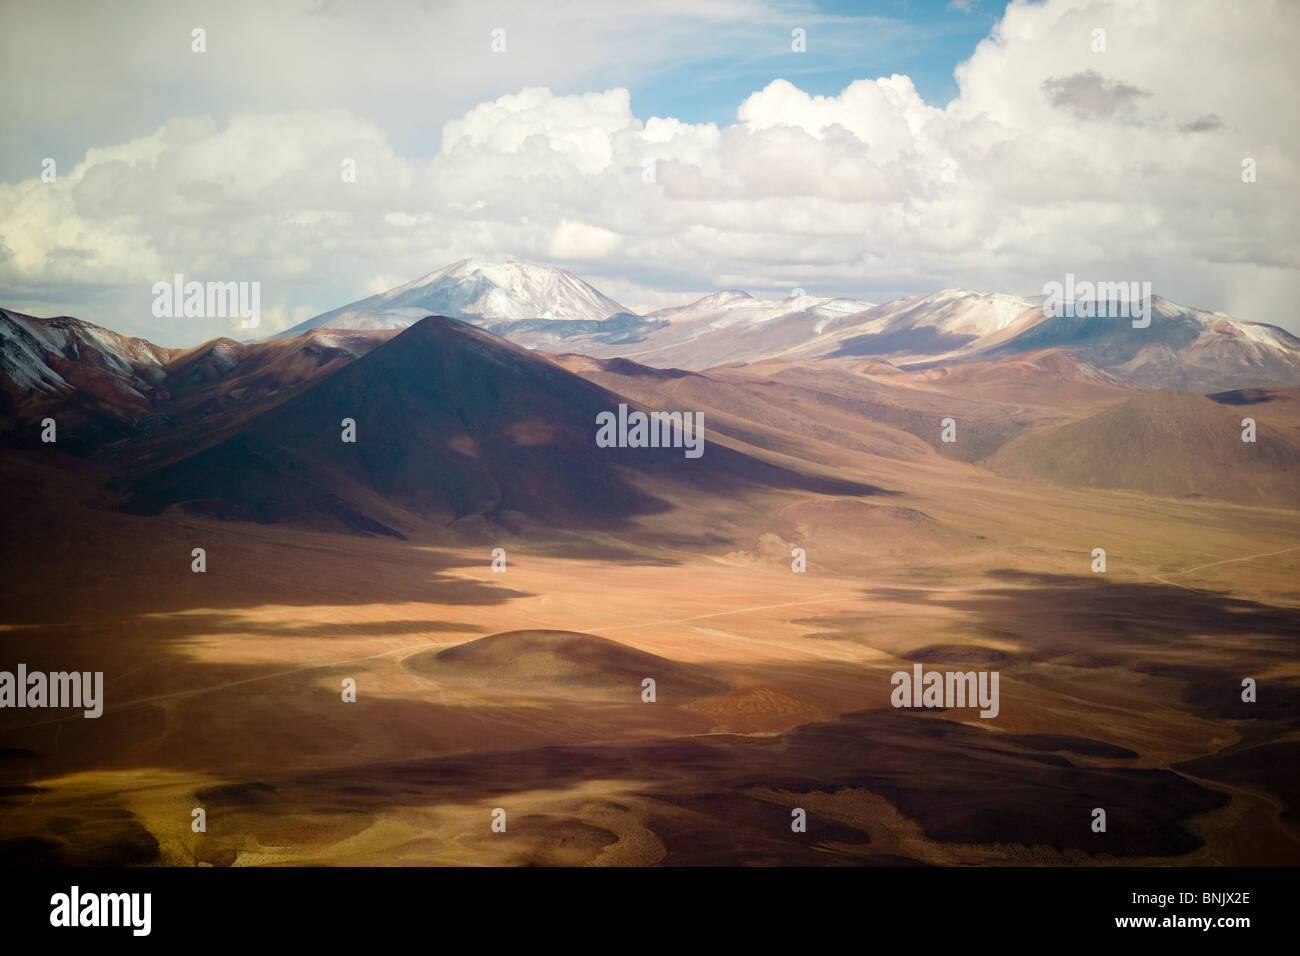 Aerial view of the Atacama desert, northern Chile - Stock Image